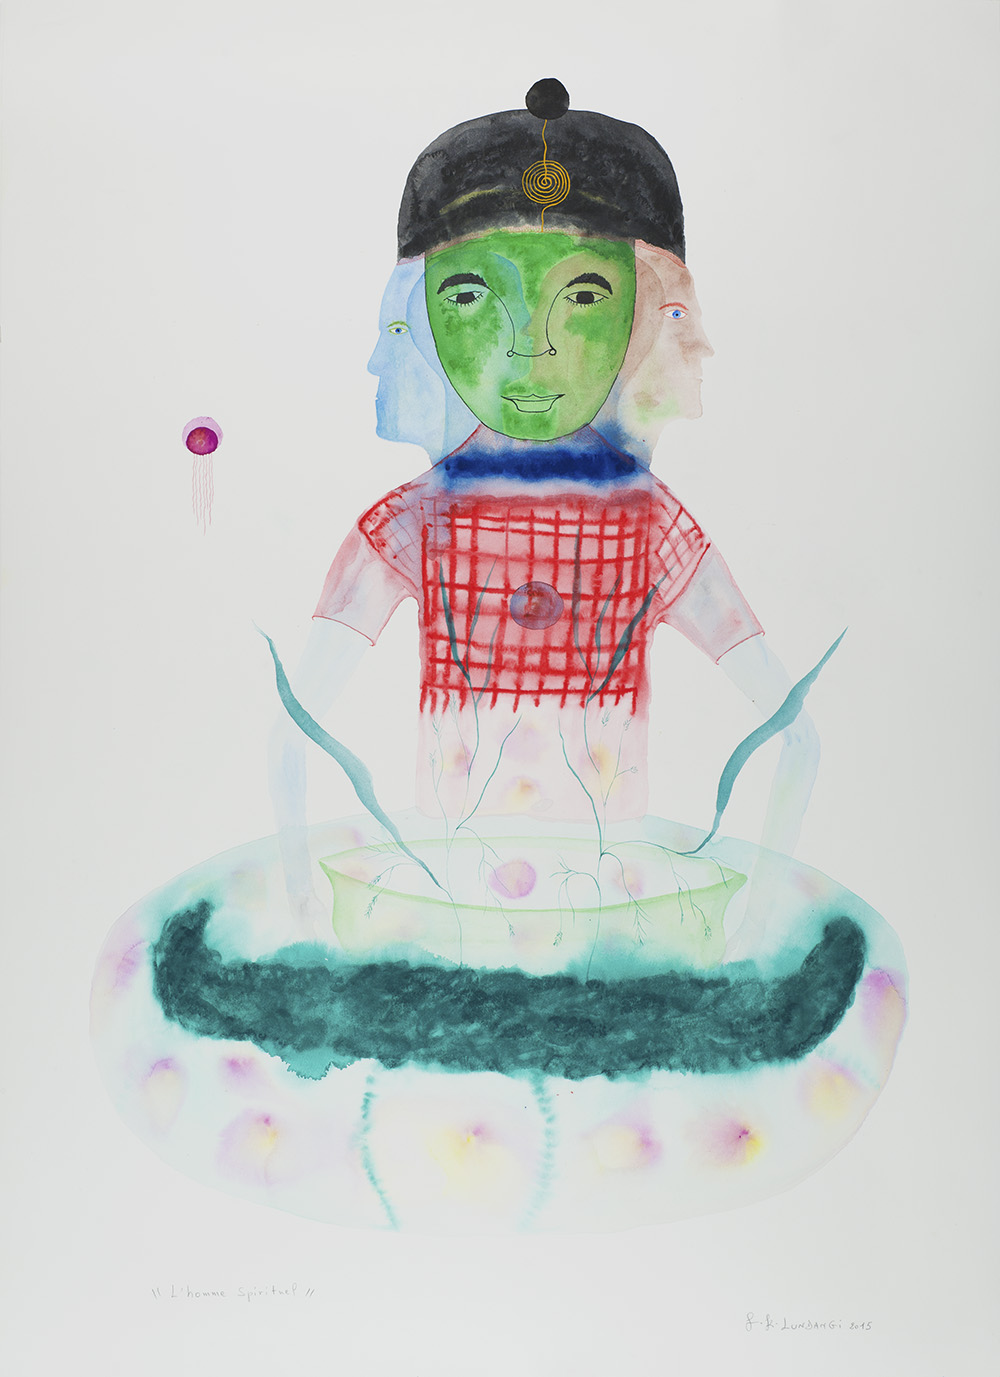 Franck K. Lundangi    L'homme Spirituel  , 2015 Watercolor, ink on paper 41 x 29.5 inches 104.1 x 74.9 cm FLu 36